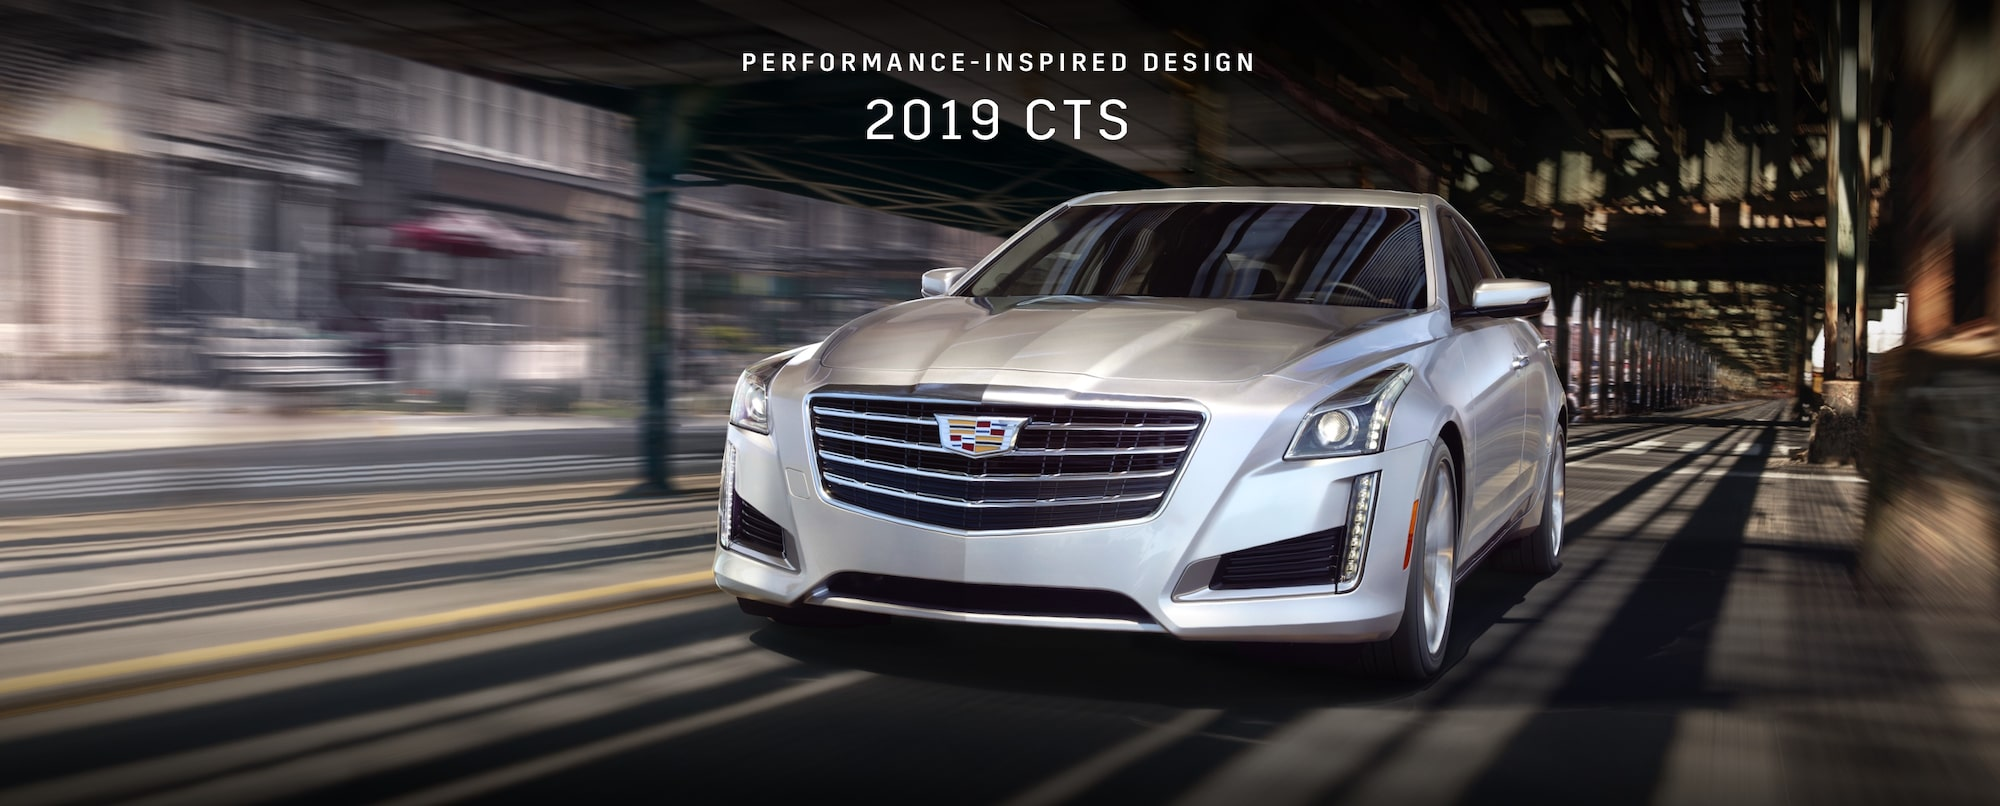 2019 Cts Sedan Cadillac. 2019 Cadillac Cts Sedan. Cadillac. 2014 Cadillac Cts Schematic At Scoala.co